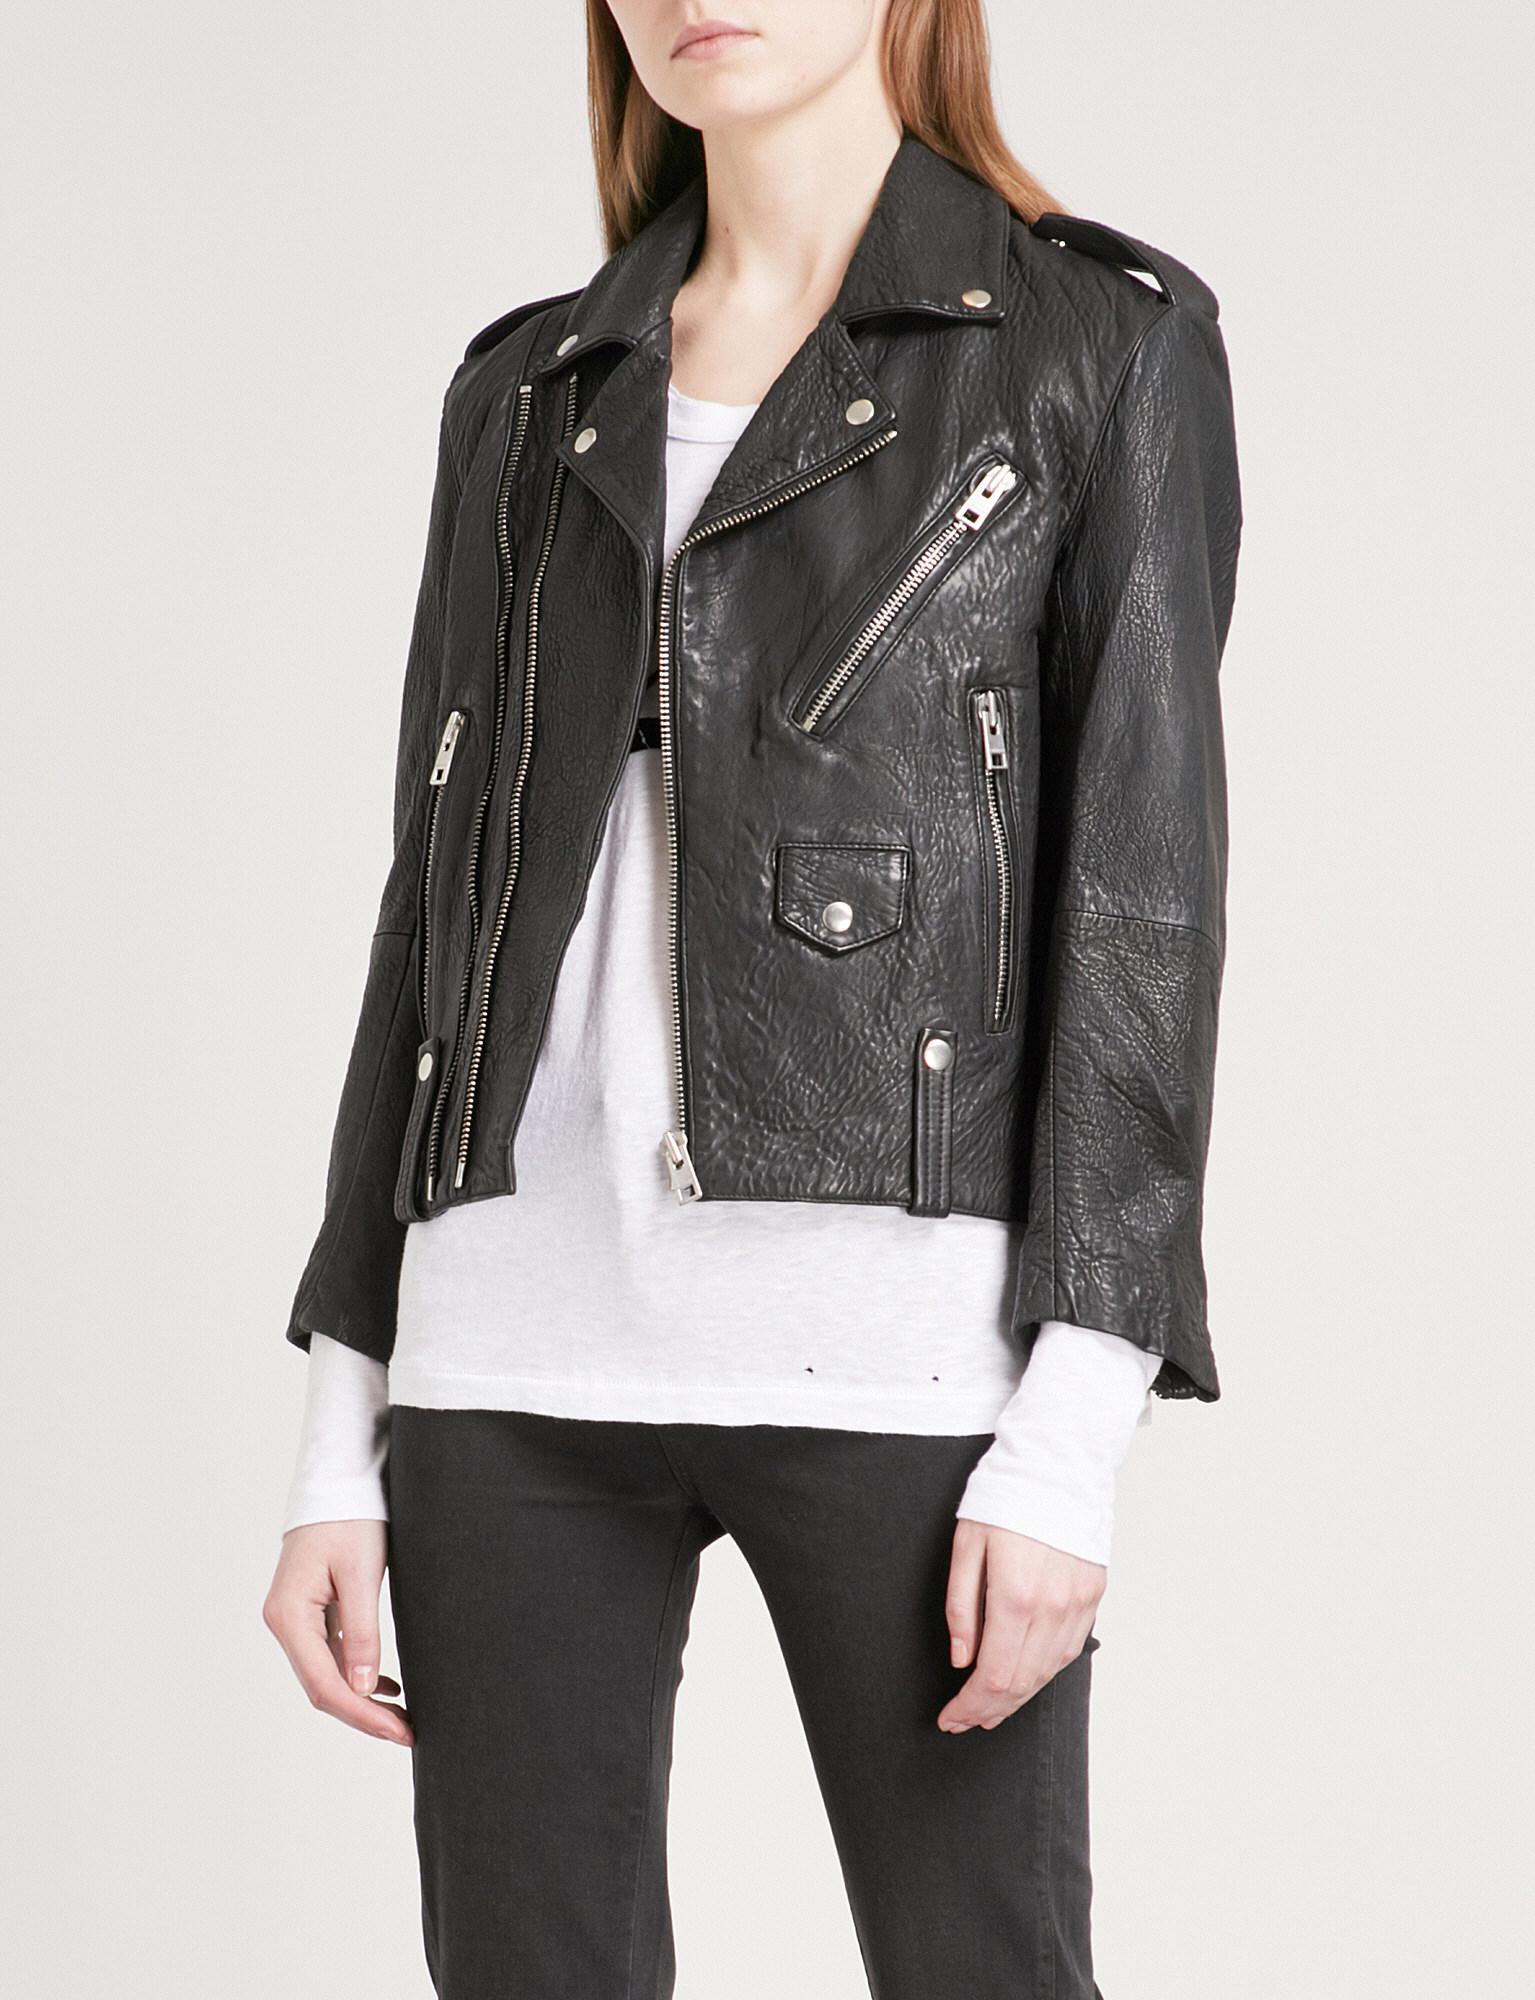 Zadig & Voltaire classic biker jacket - Black Original Online Enjoy Sale Online Clearance Latest Clearance Reliable vXyFERbRG